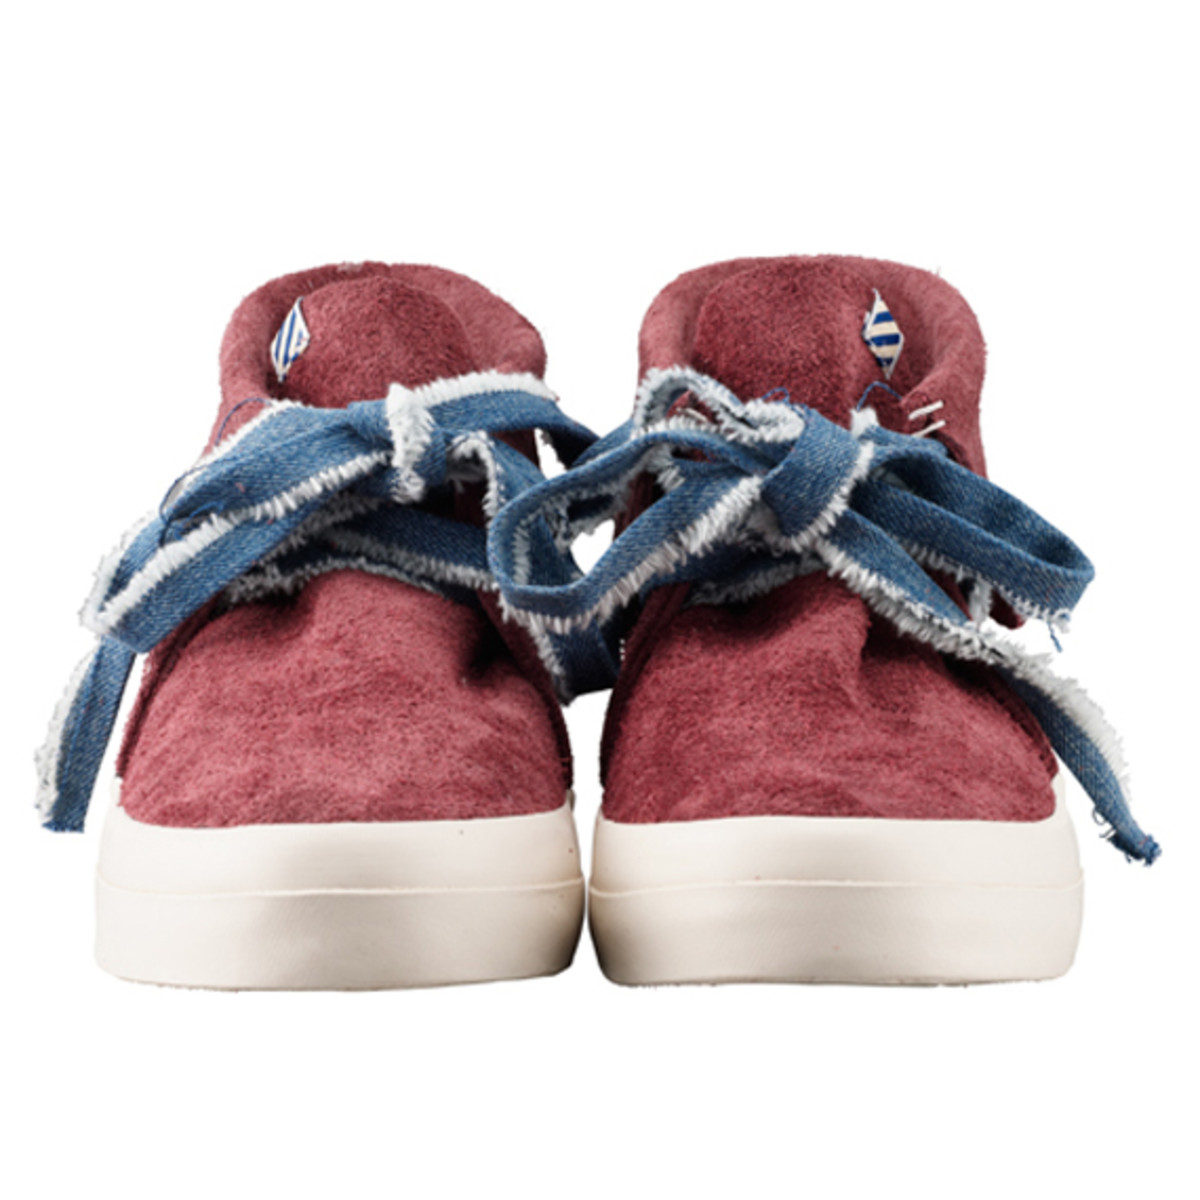 flynt-mid-suede-06